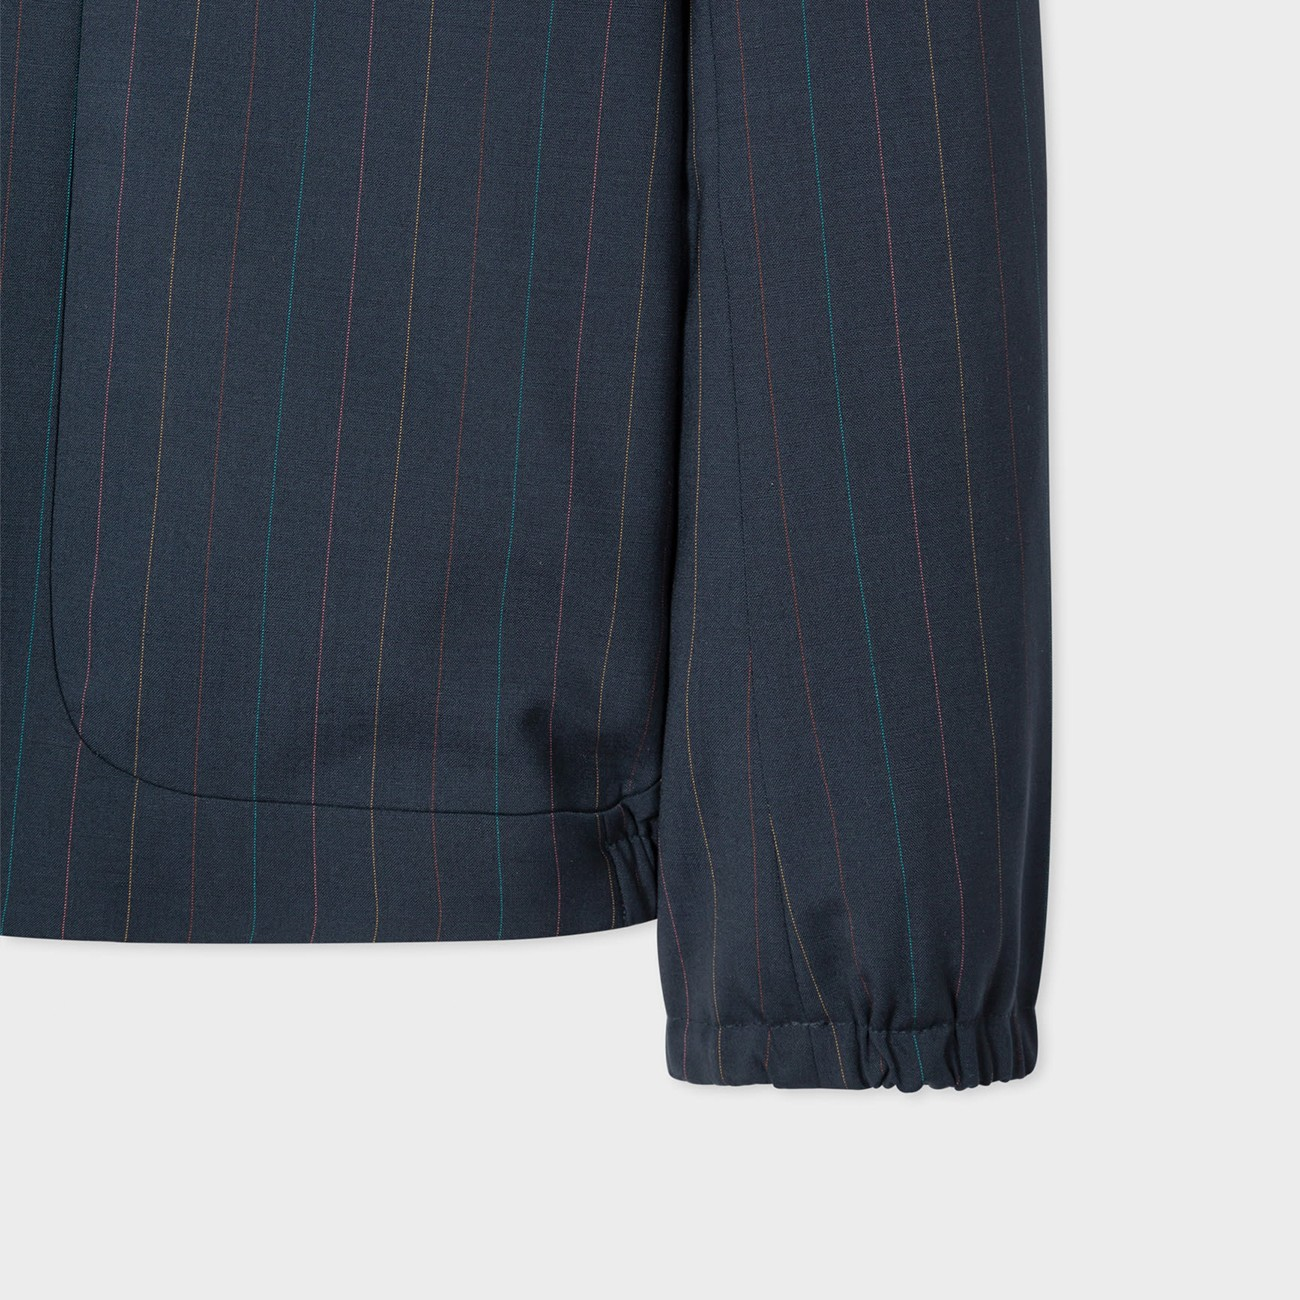 NAVY BLUE WOOL JACKET WITH DIPLOMATIC STRIPE PAUL SMITH M1R-1984-F01336-49